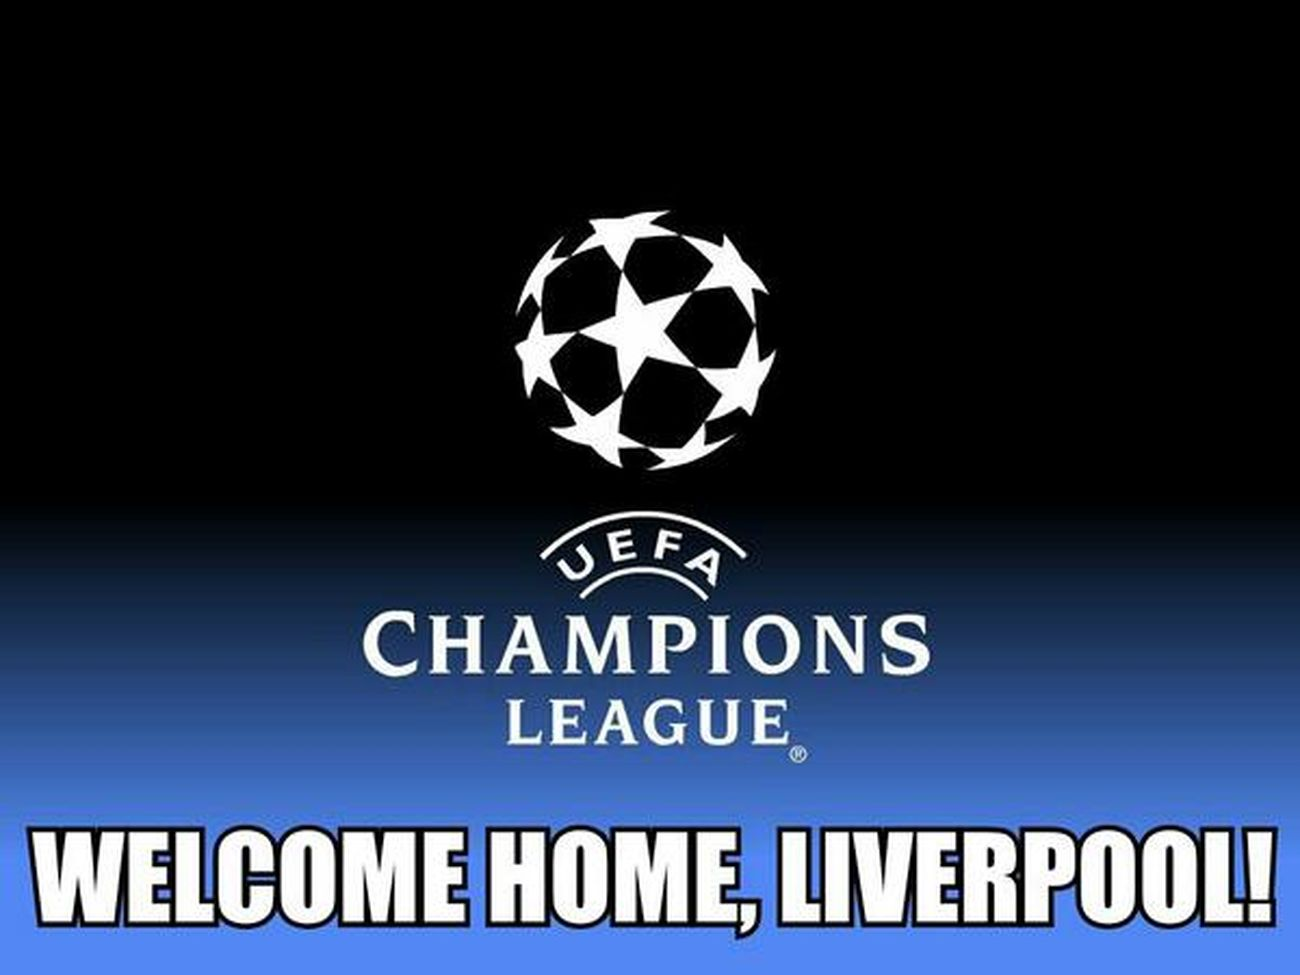 Welcome home to Champions Legue, Liverpool! MakeUsDream YNWA